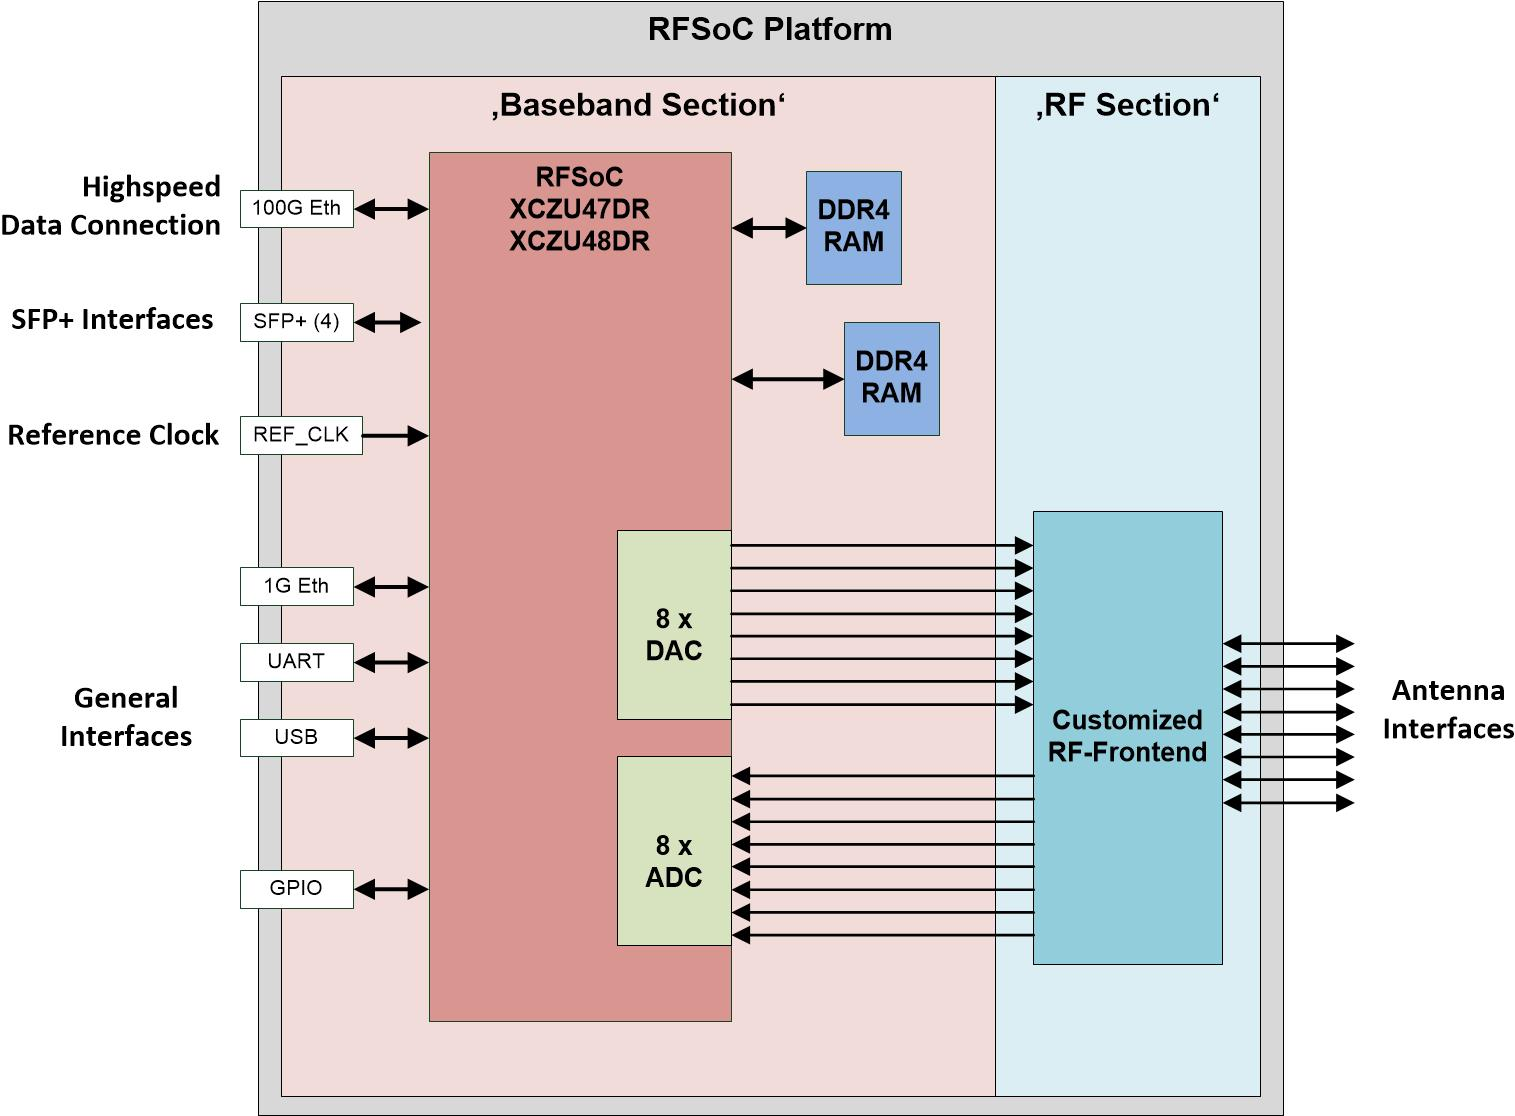 RFSoC platform for Massive MIMO | RFSoC platform for Massive MIMO